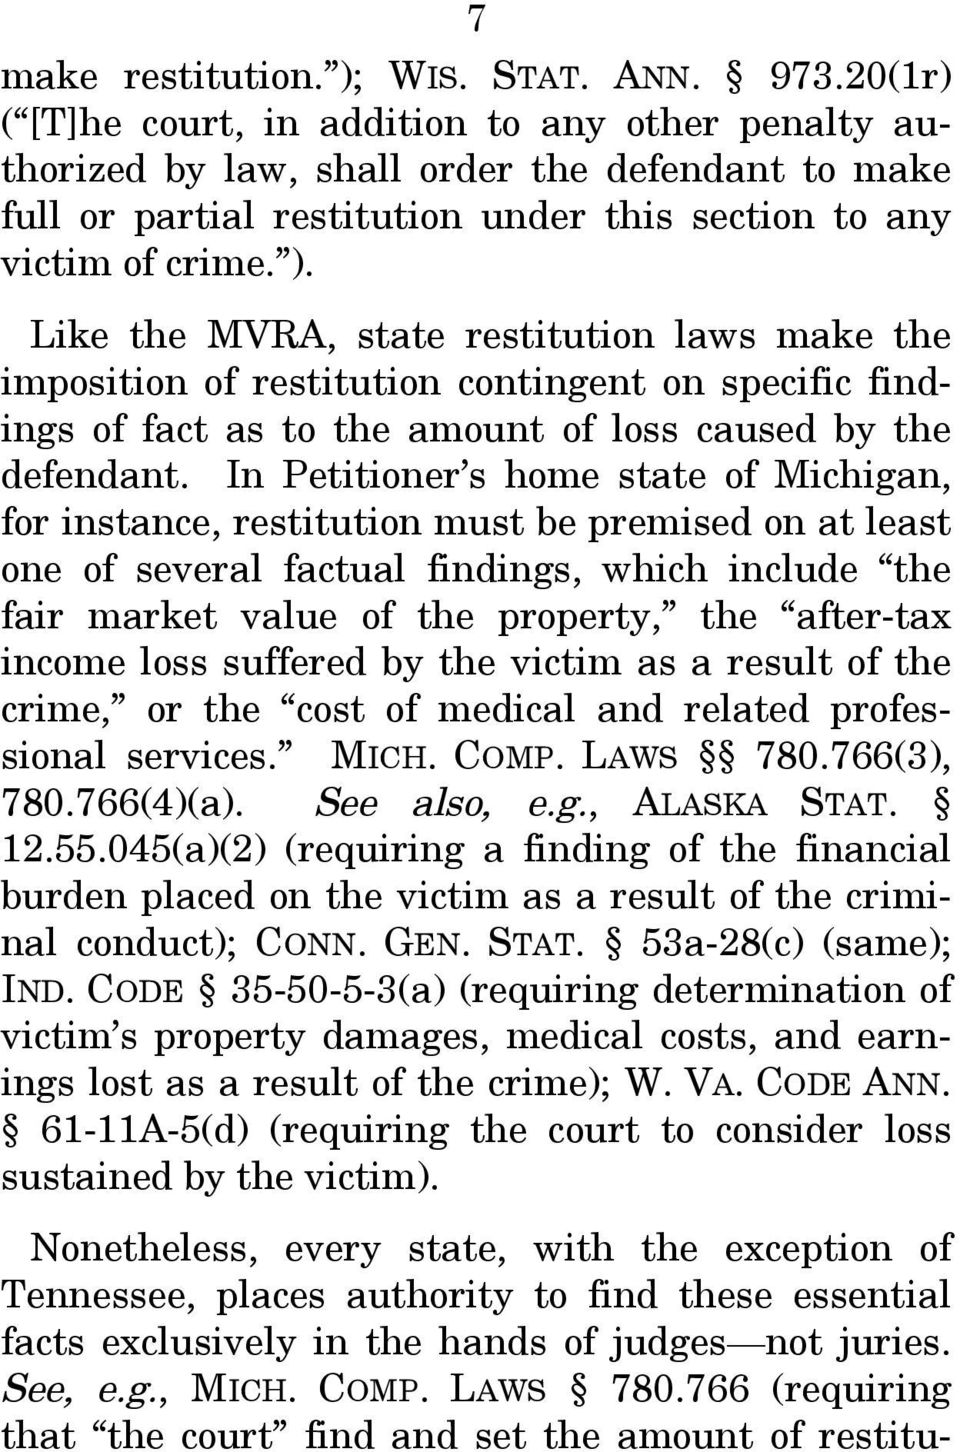 Like the MVRA, state restitution laws make the imposition of restitution contingent on specific findings of fact as to the amount of loss caused by the defendant.